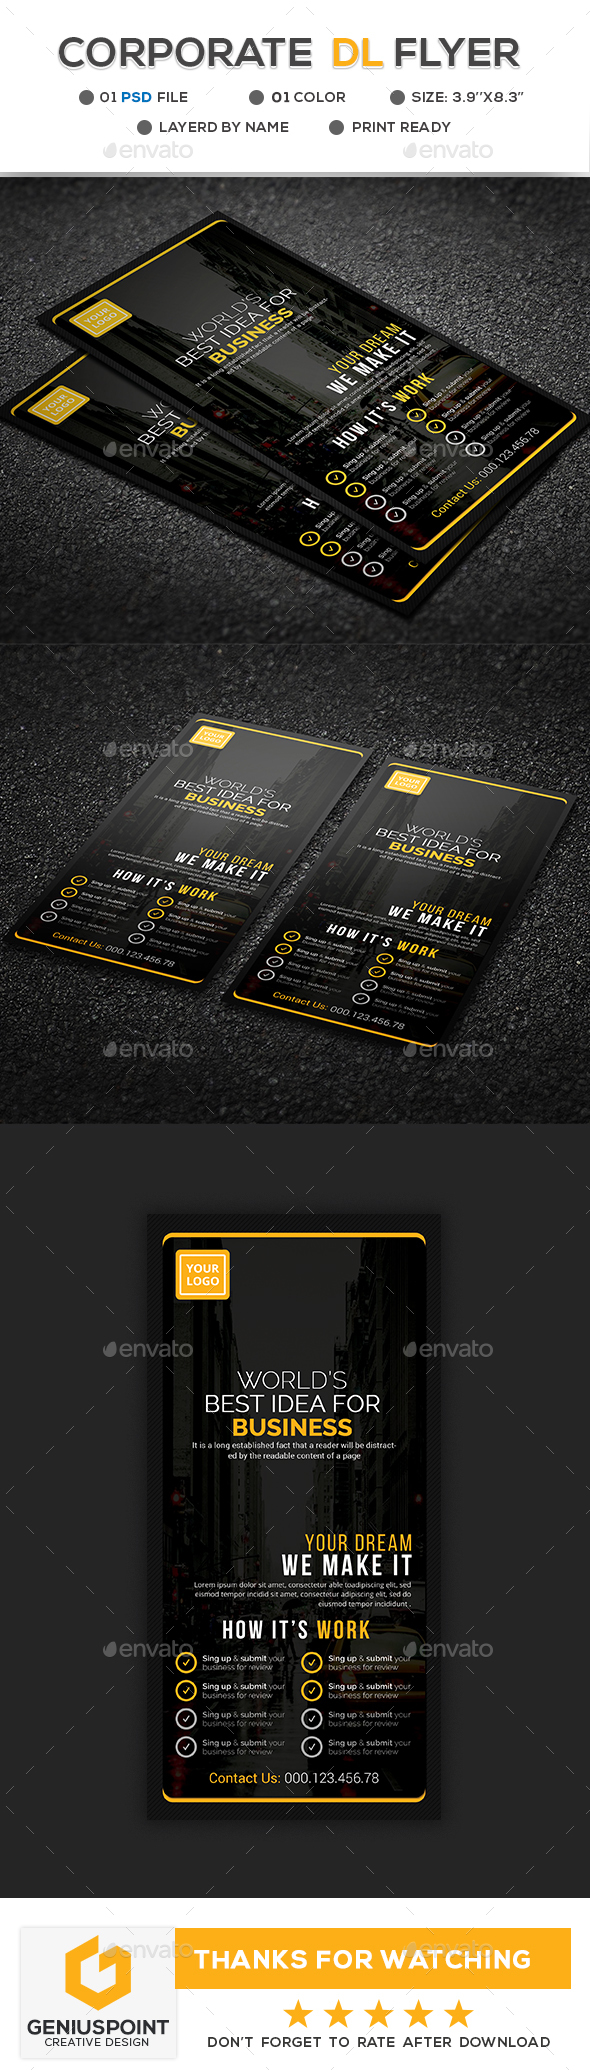 GraphicRiver Corporate DL Flyer 21192295